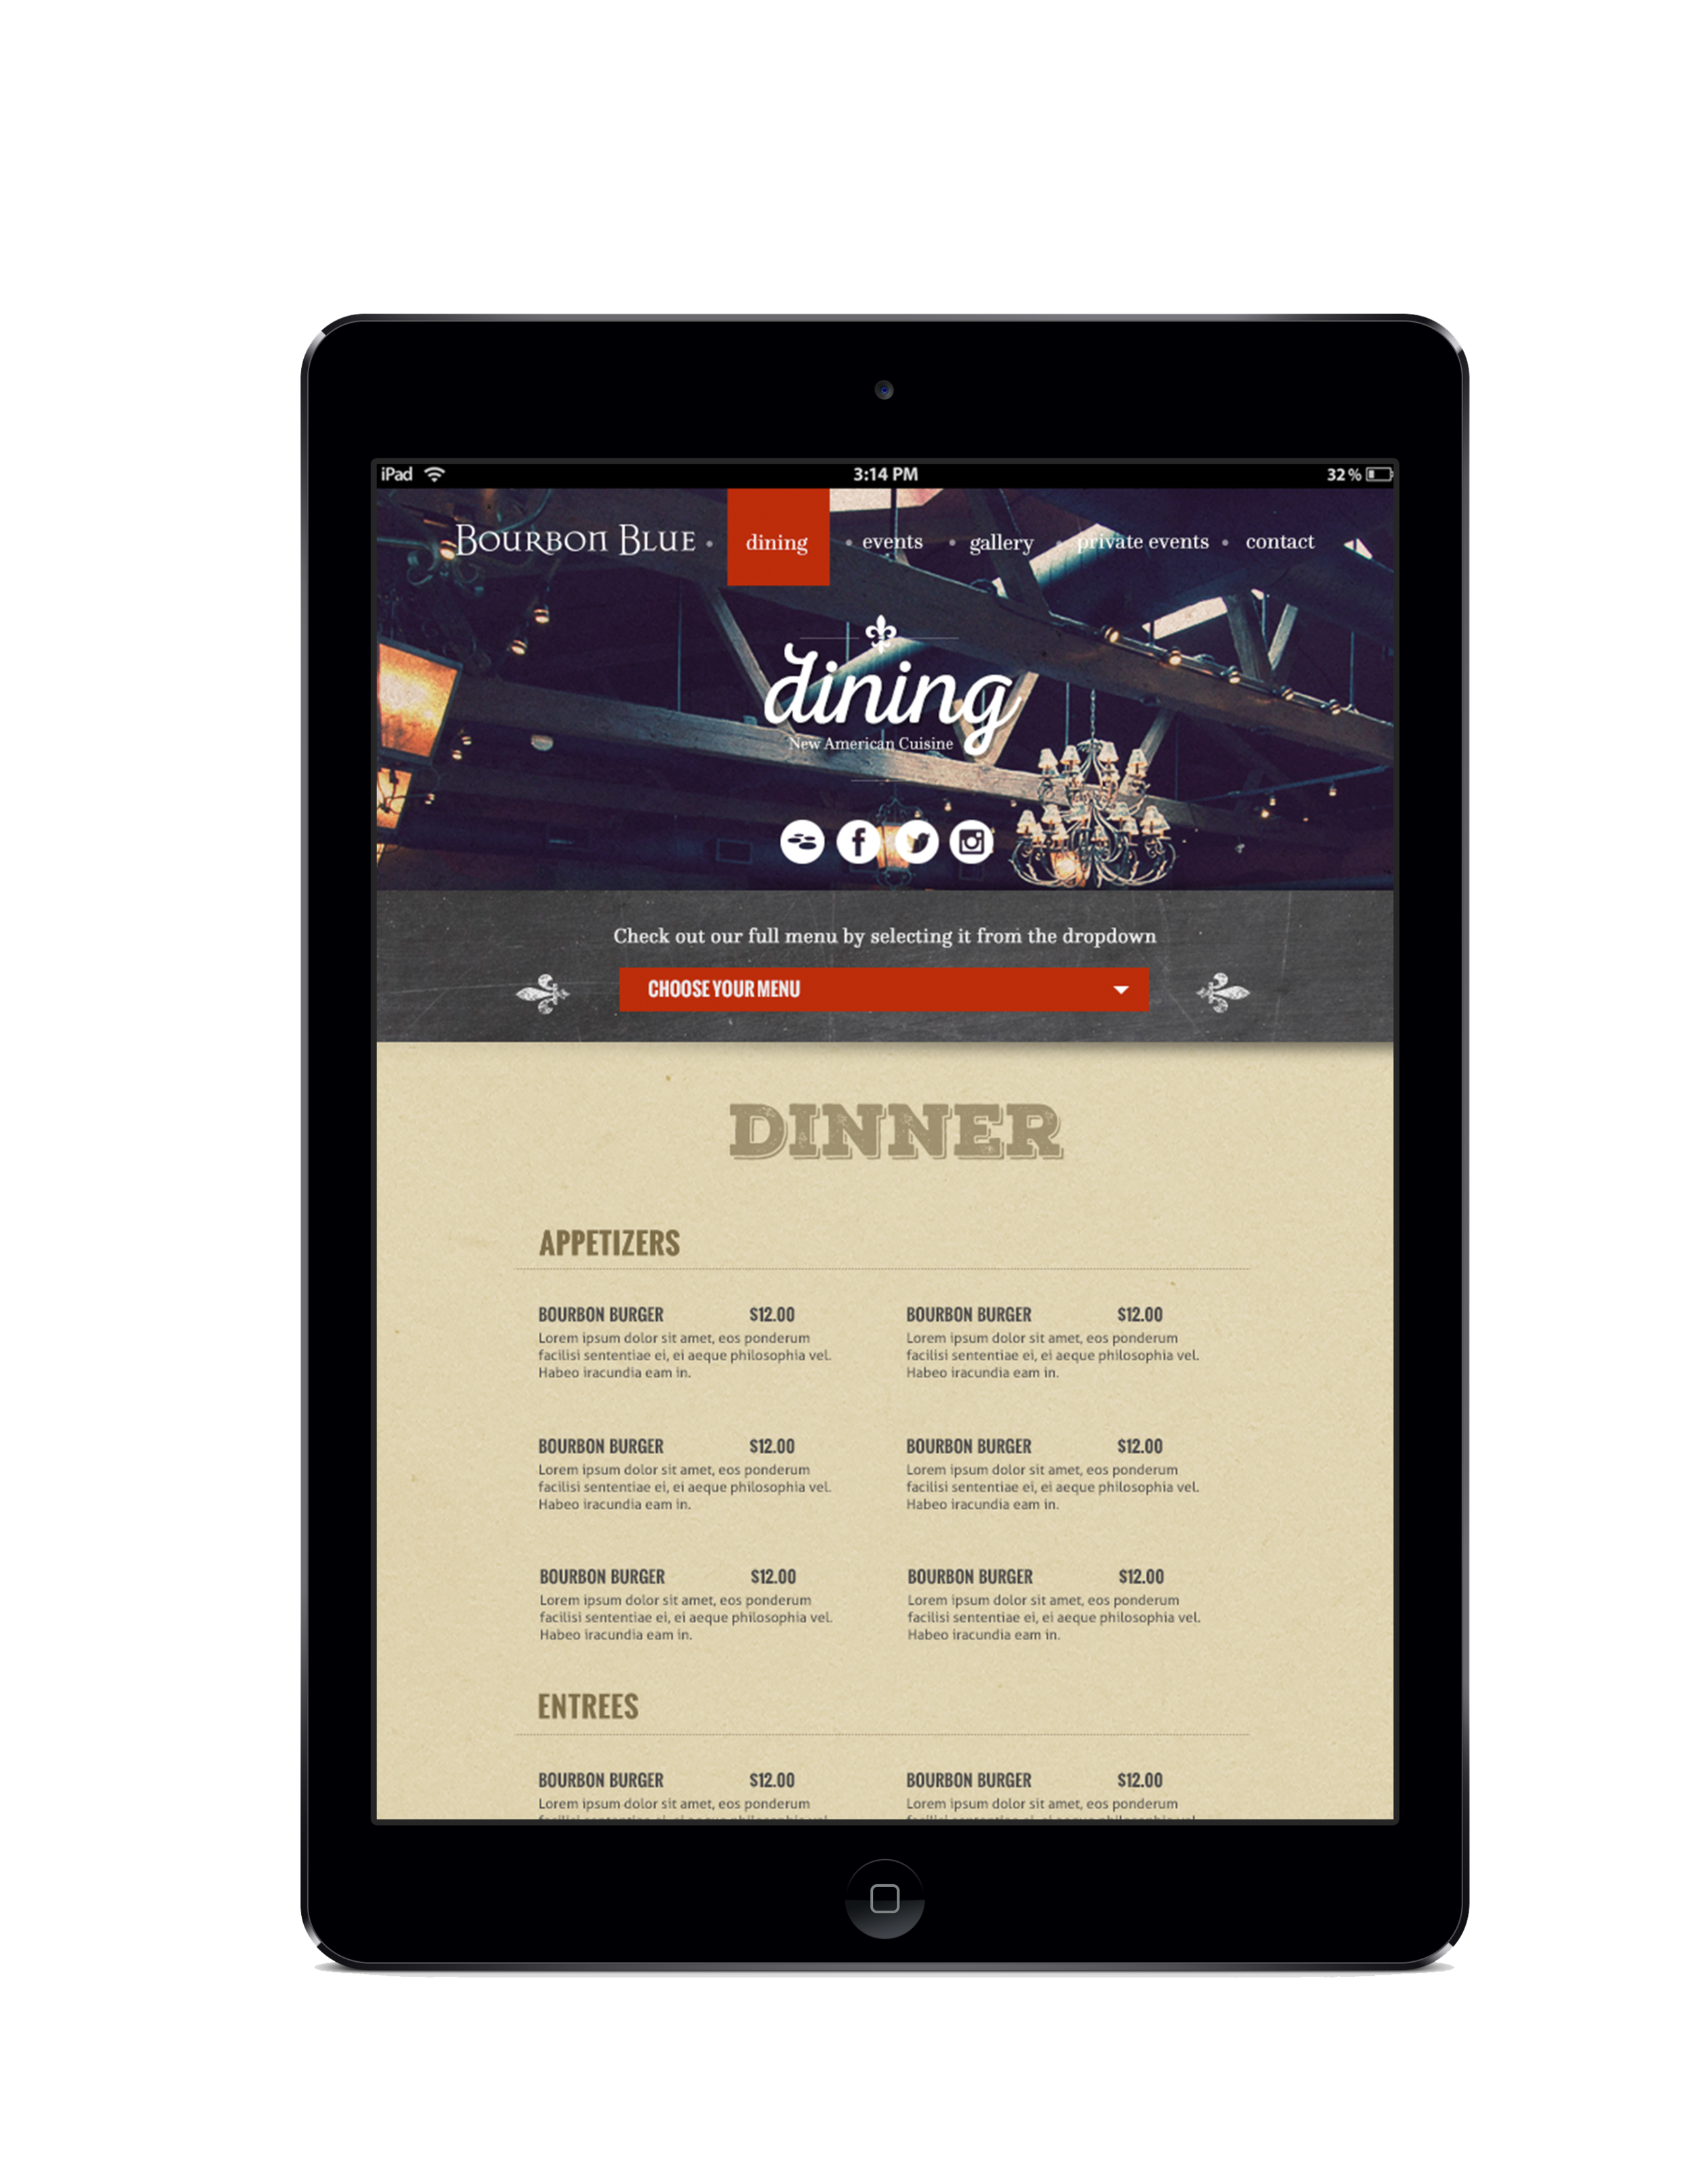 BourbonBlue-Dining_Ipad.png